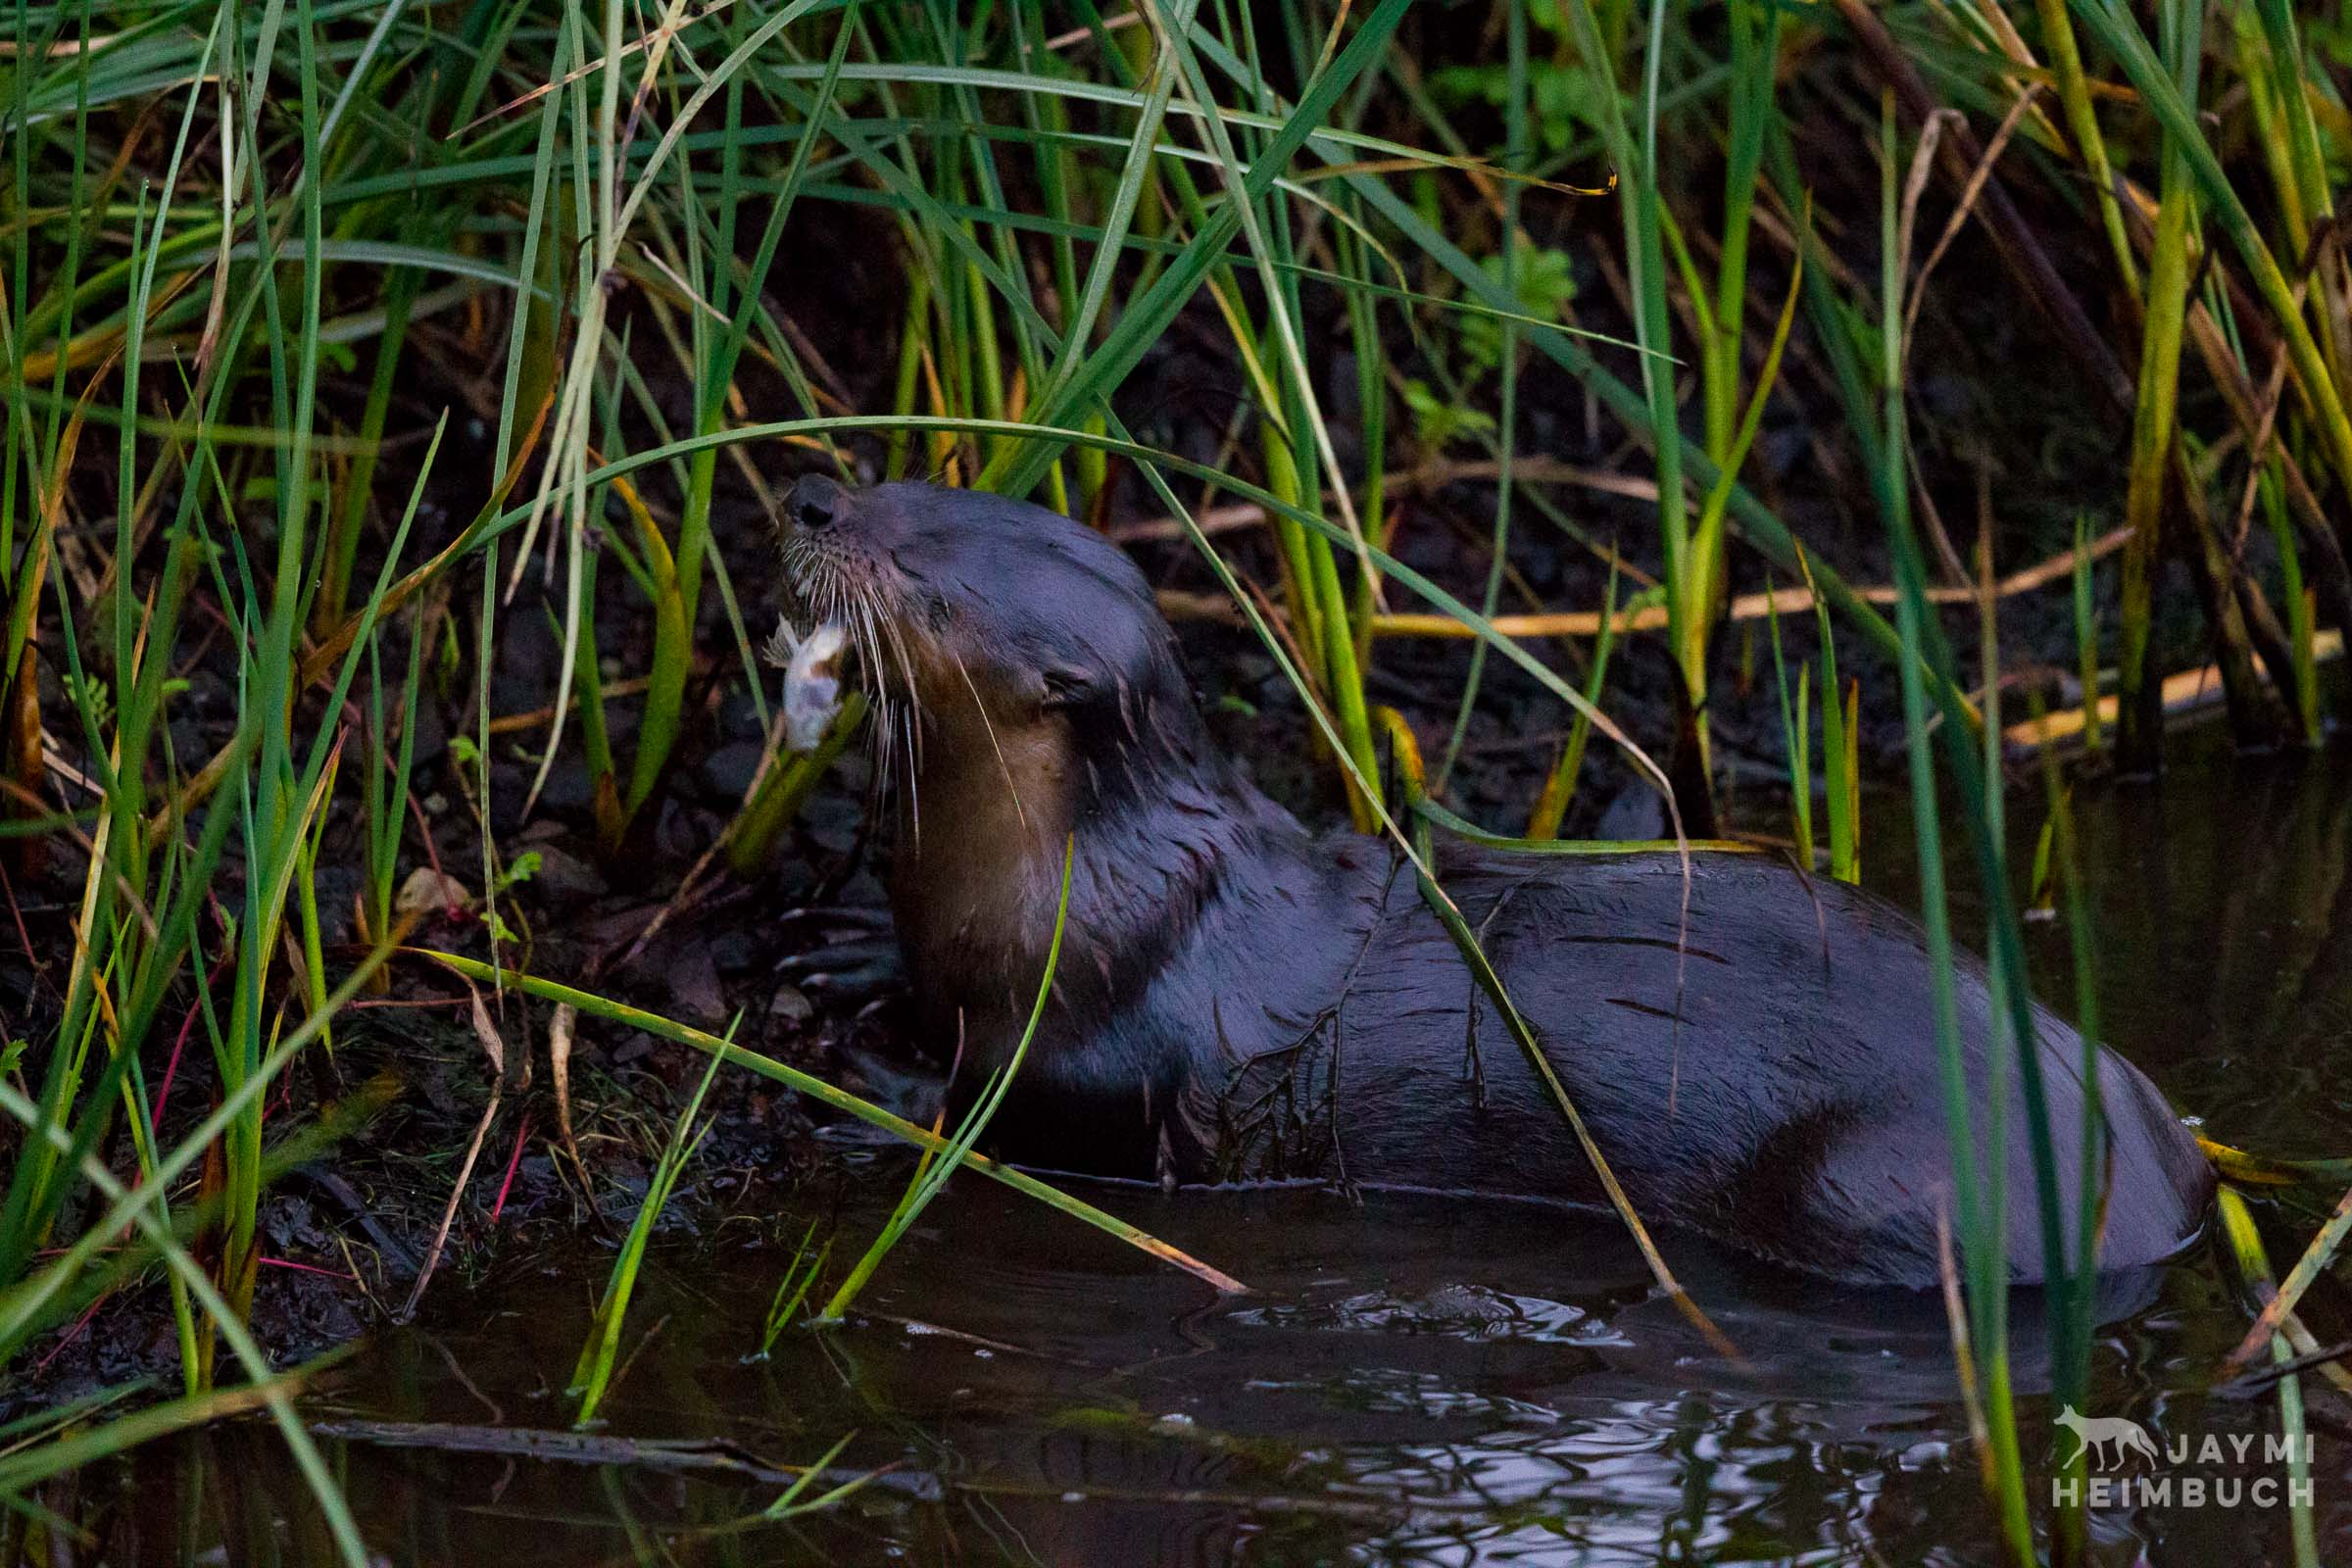 north american river otter, san francisco bay area, california